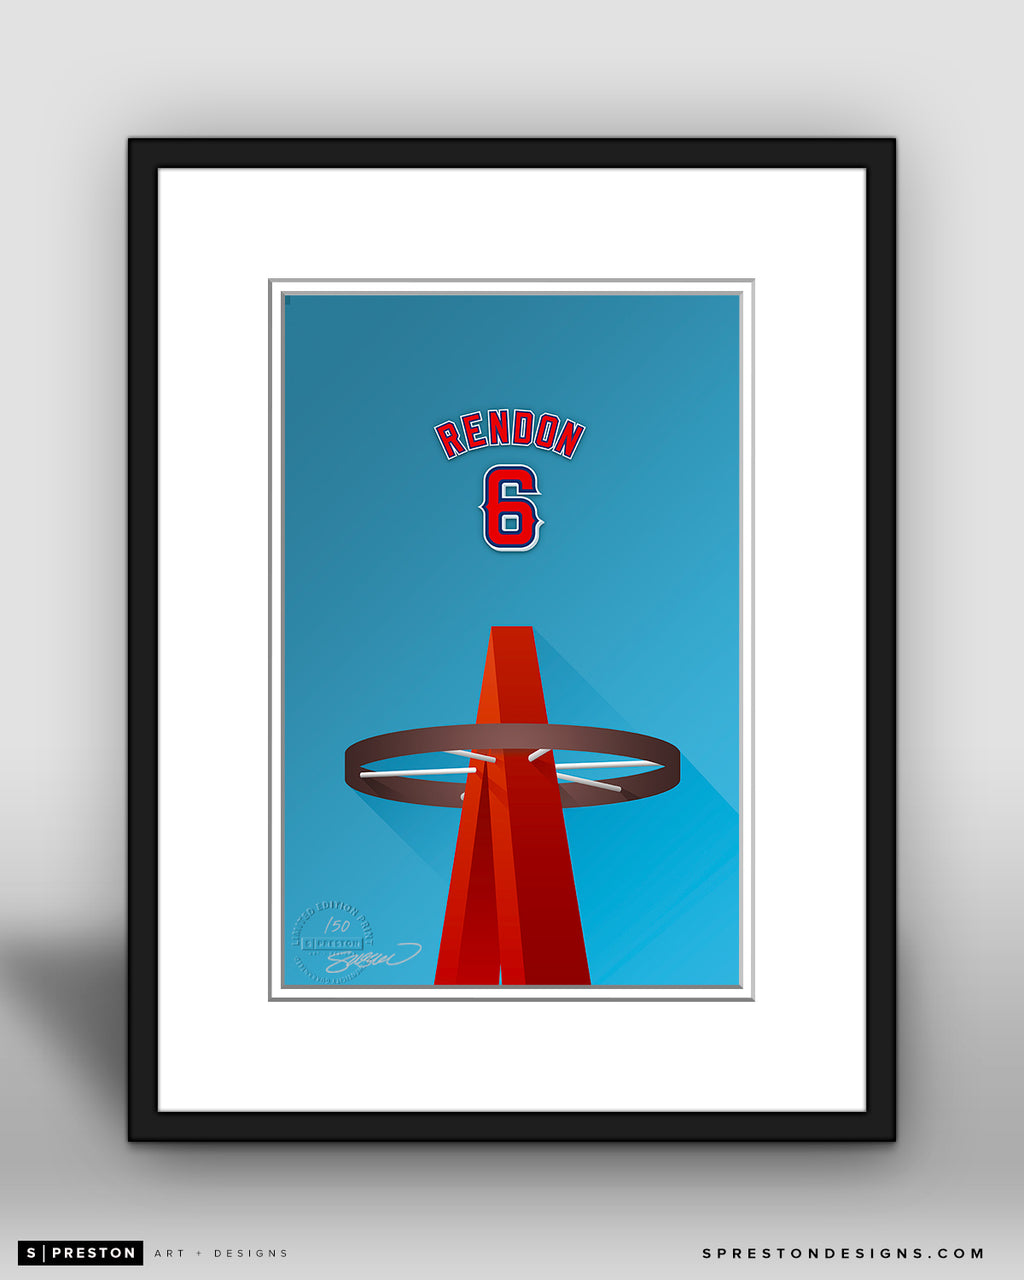 Minimalist Angel Stadium - Player Series - Anthony Rendon - Los Angeles Angels - S. Preston